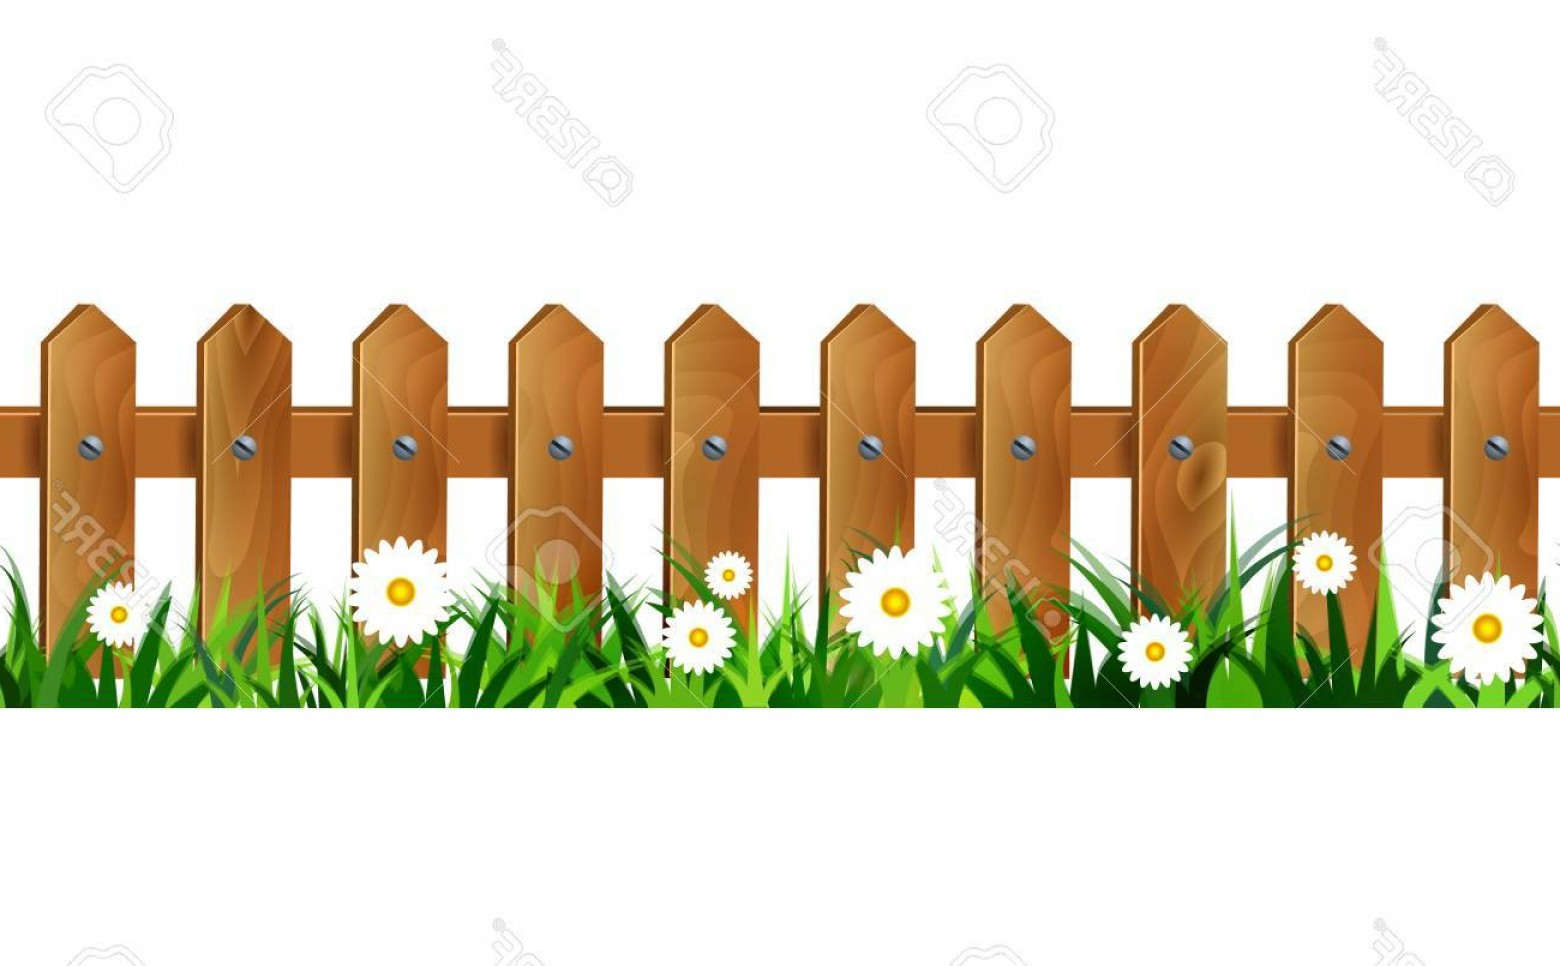 1560x966 Photostock Vector Green Grass And Wooden Fence Seamless Isolated